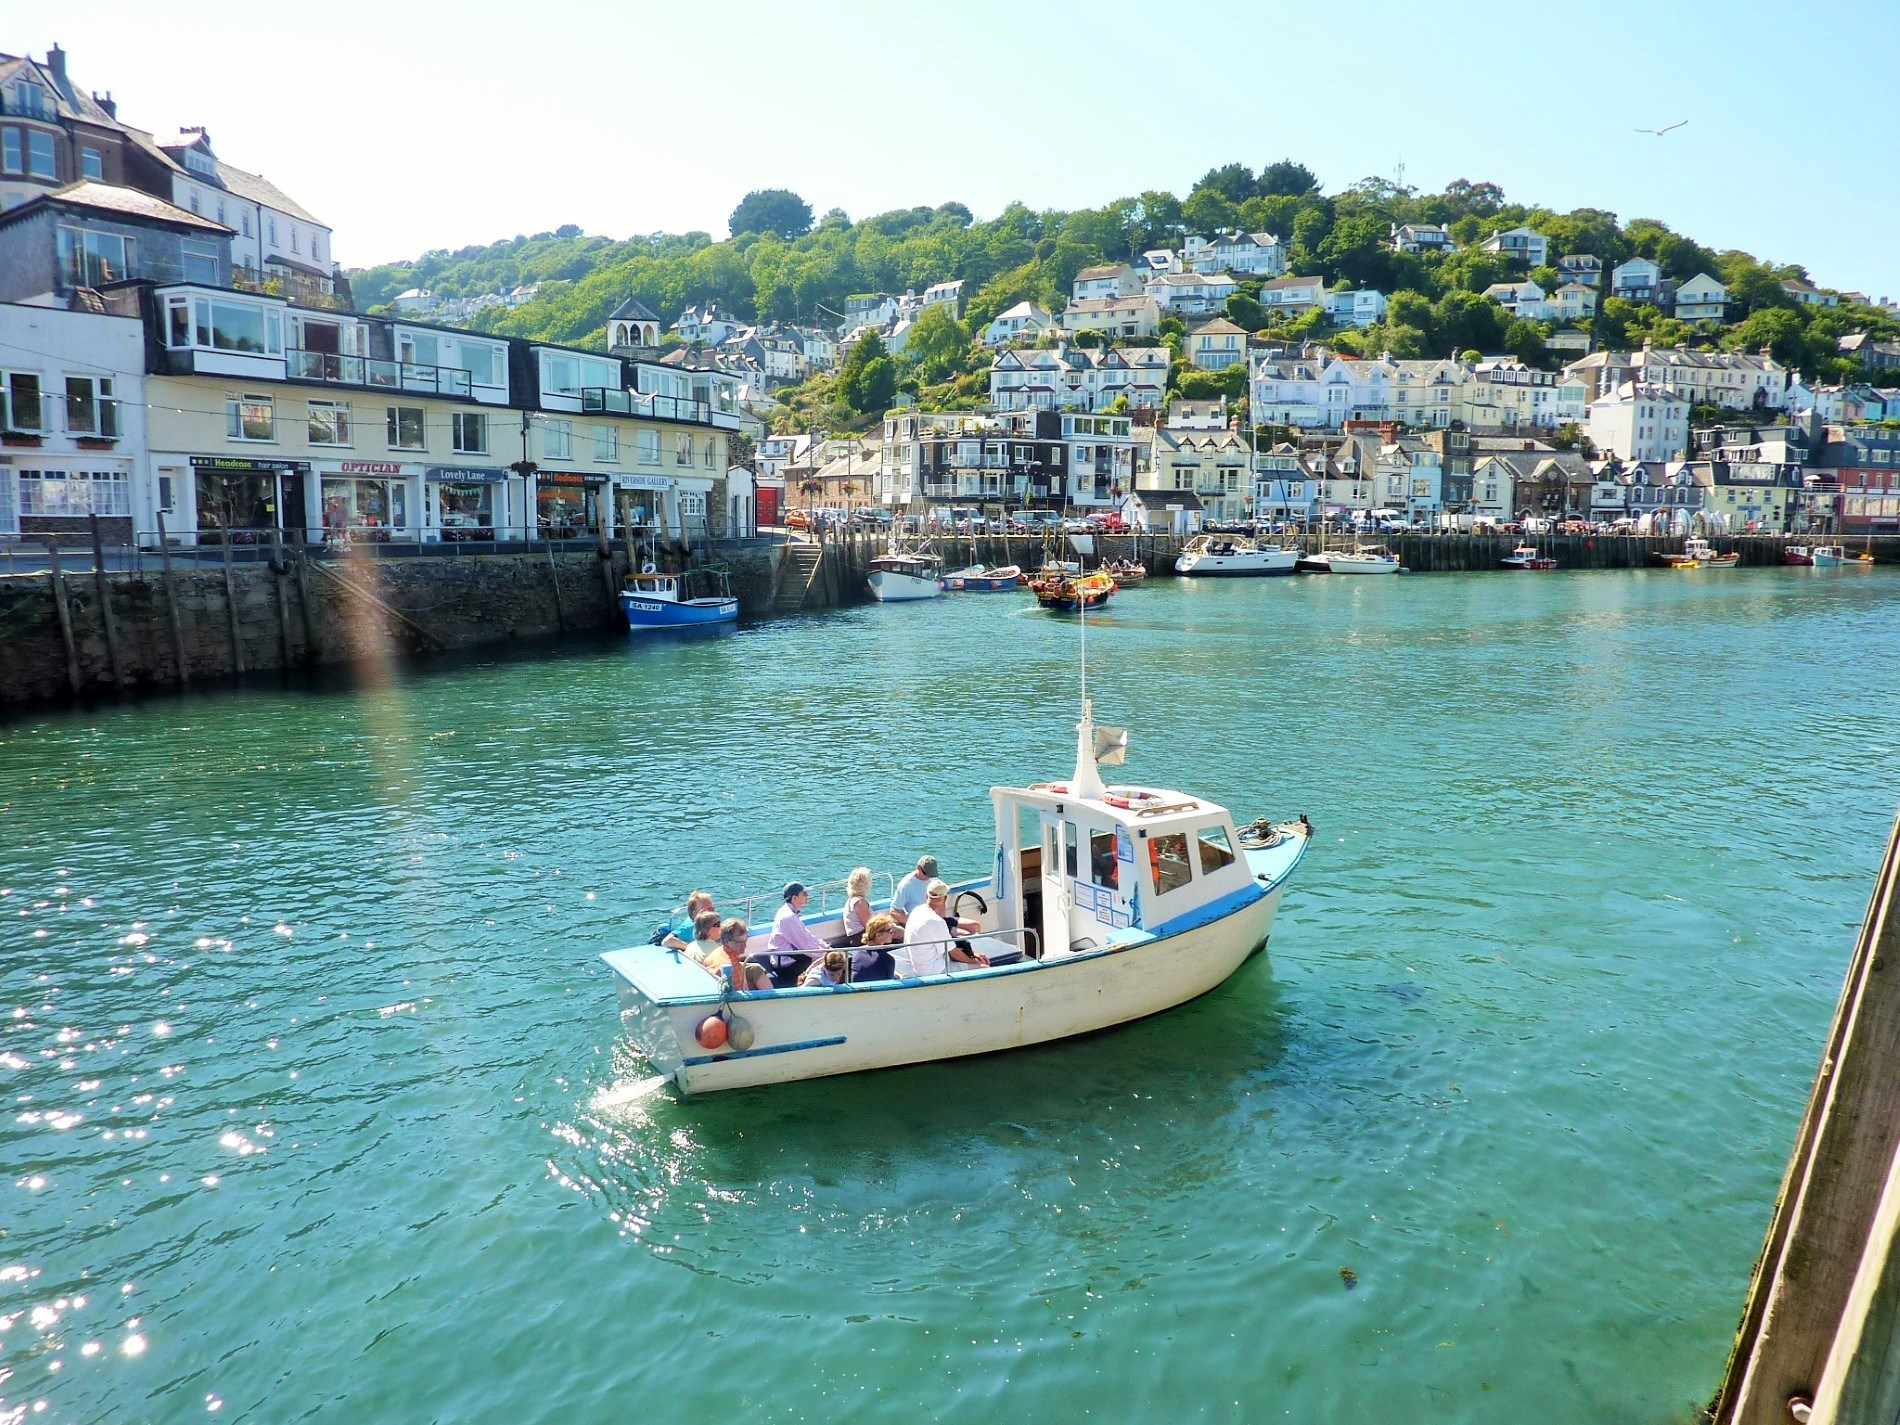 3 Bedroom Cottage in Looe, Cornwall